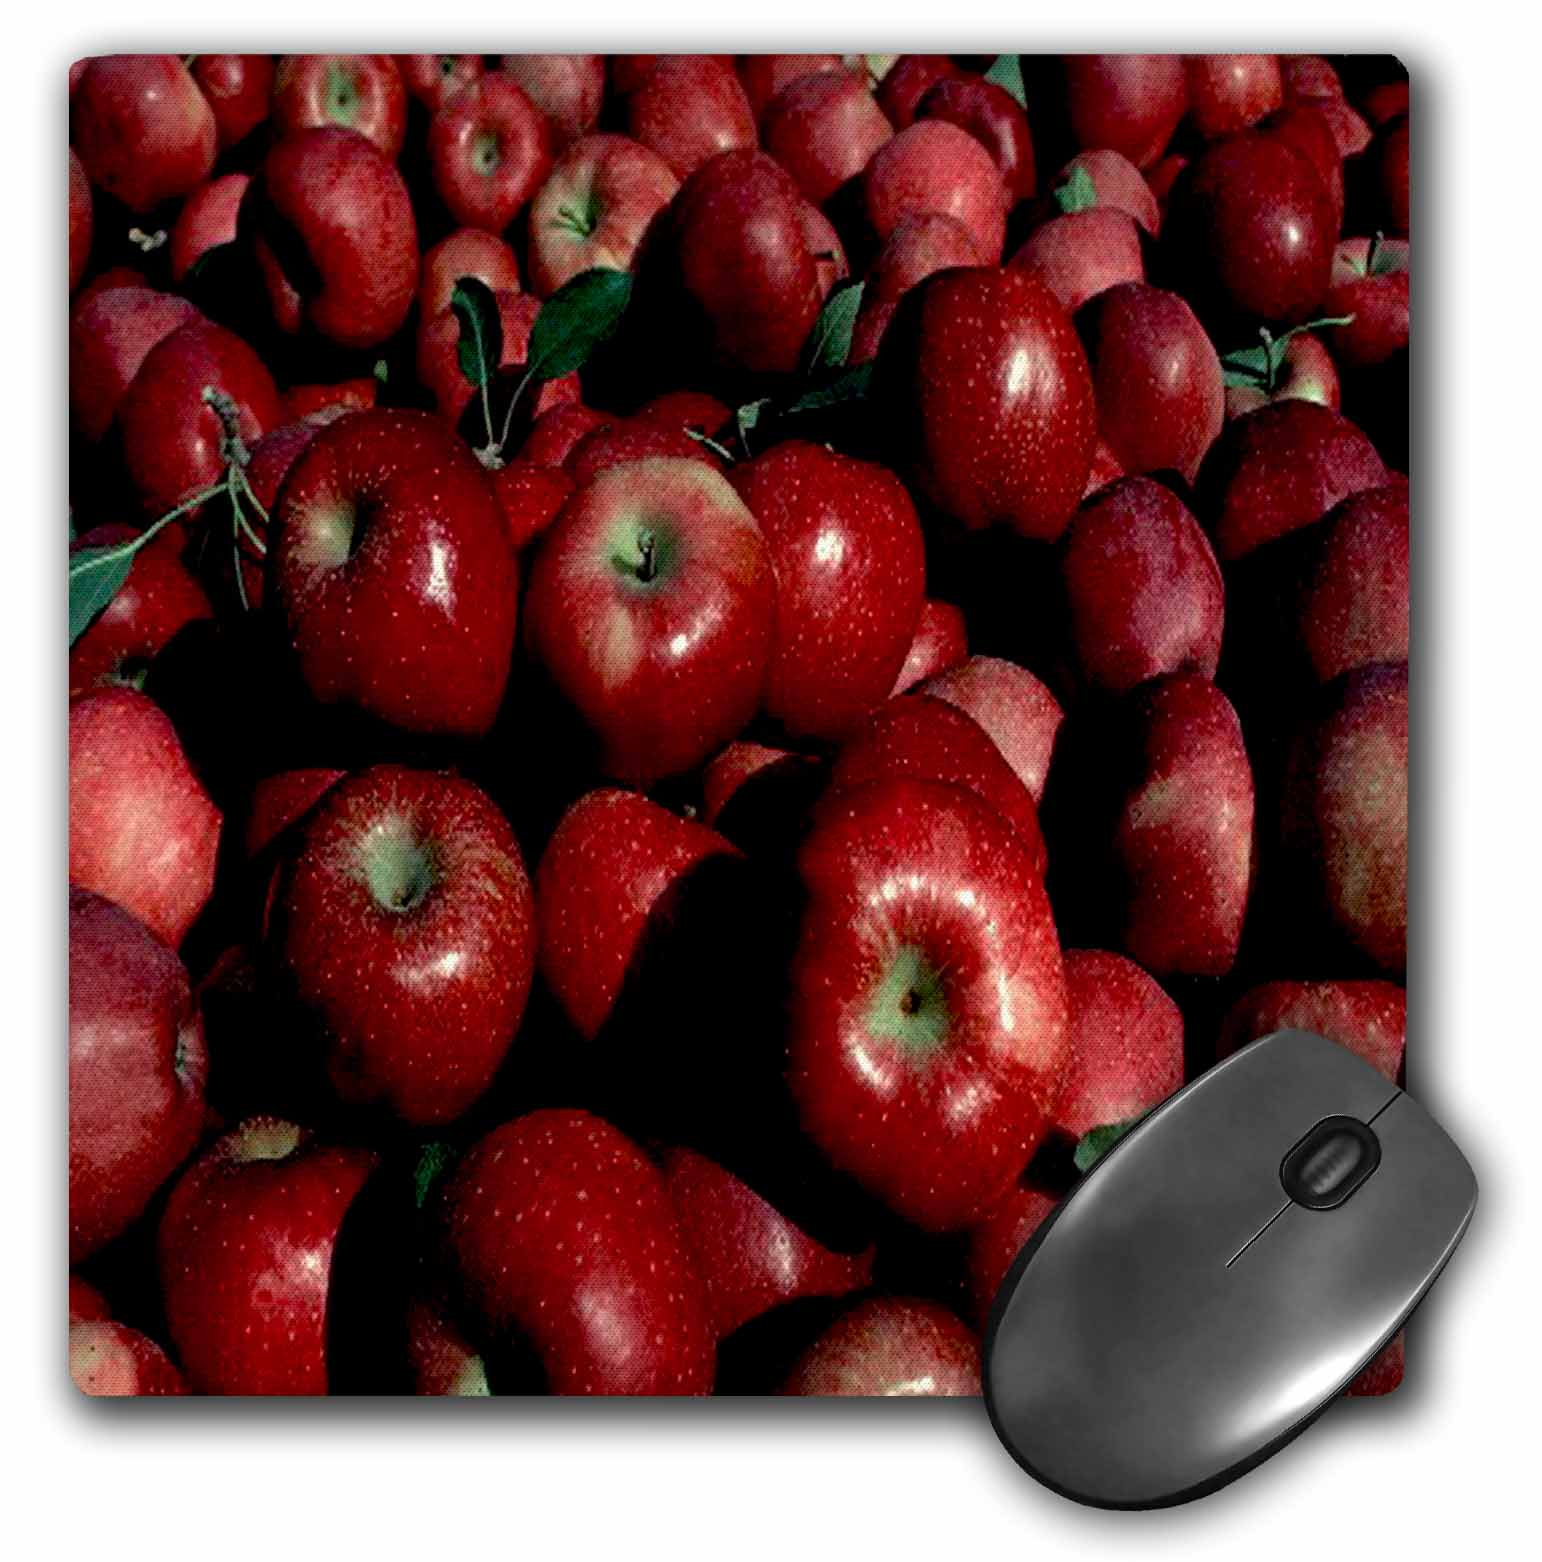 3dRose Red Apples, Mouse Pad, 8 by 8 inches